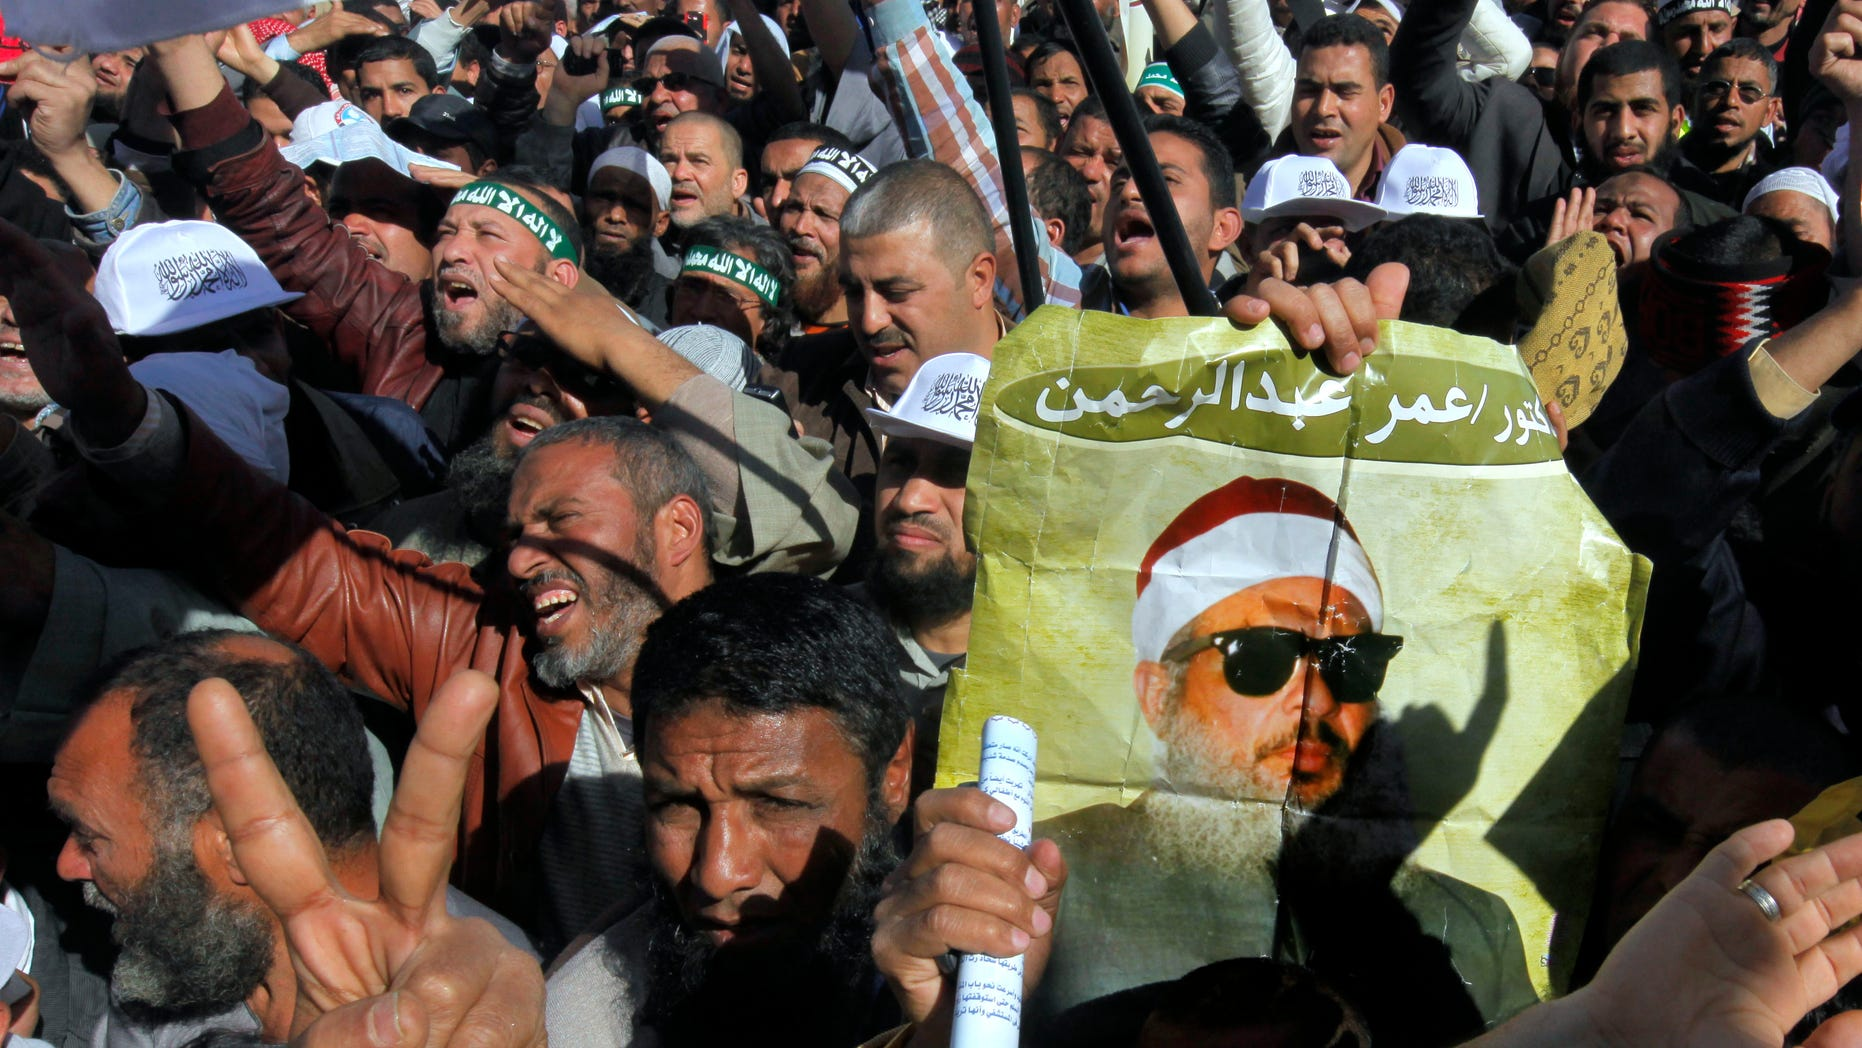 Feb. 15, 2013: Supporters of Sheik Omar Abdel-Rahman, a blind Egyptian cleric jailed in the United States for planning a campaign of bombings, call for his release  while one demonstrator holding a poster with his image, during a rally outside Cairo University in Cairo, Egypt.